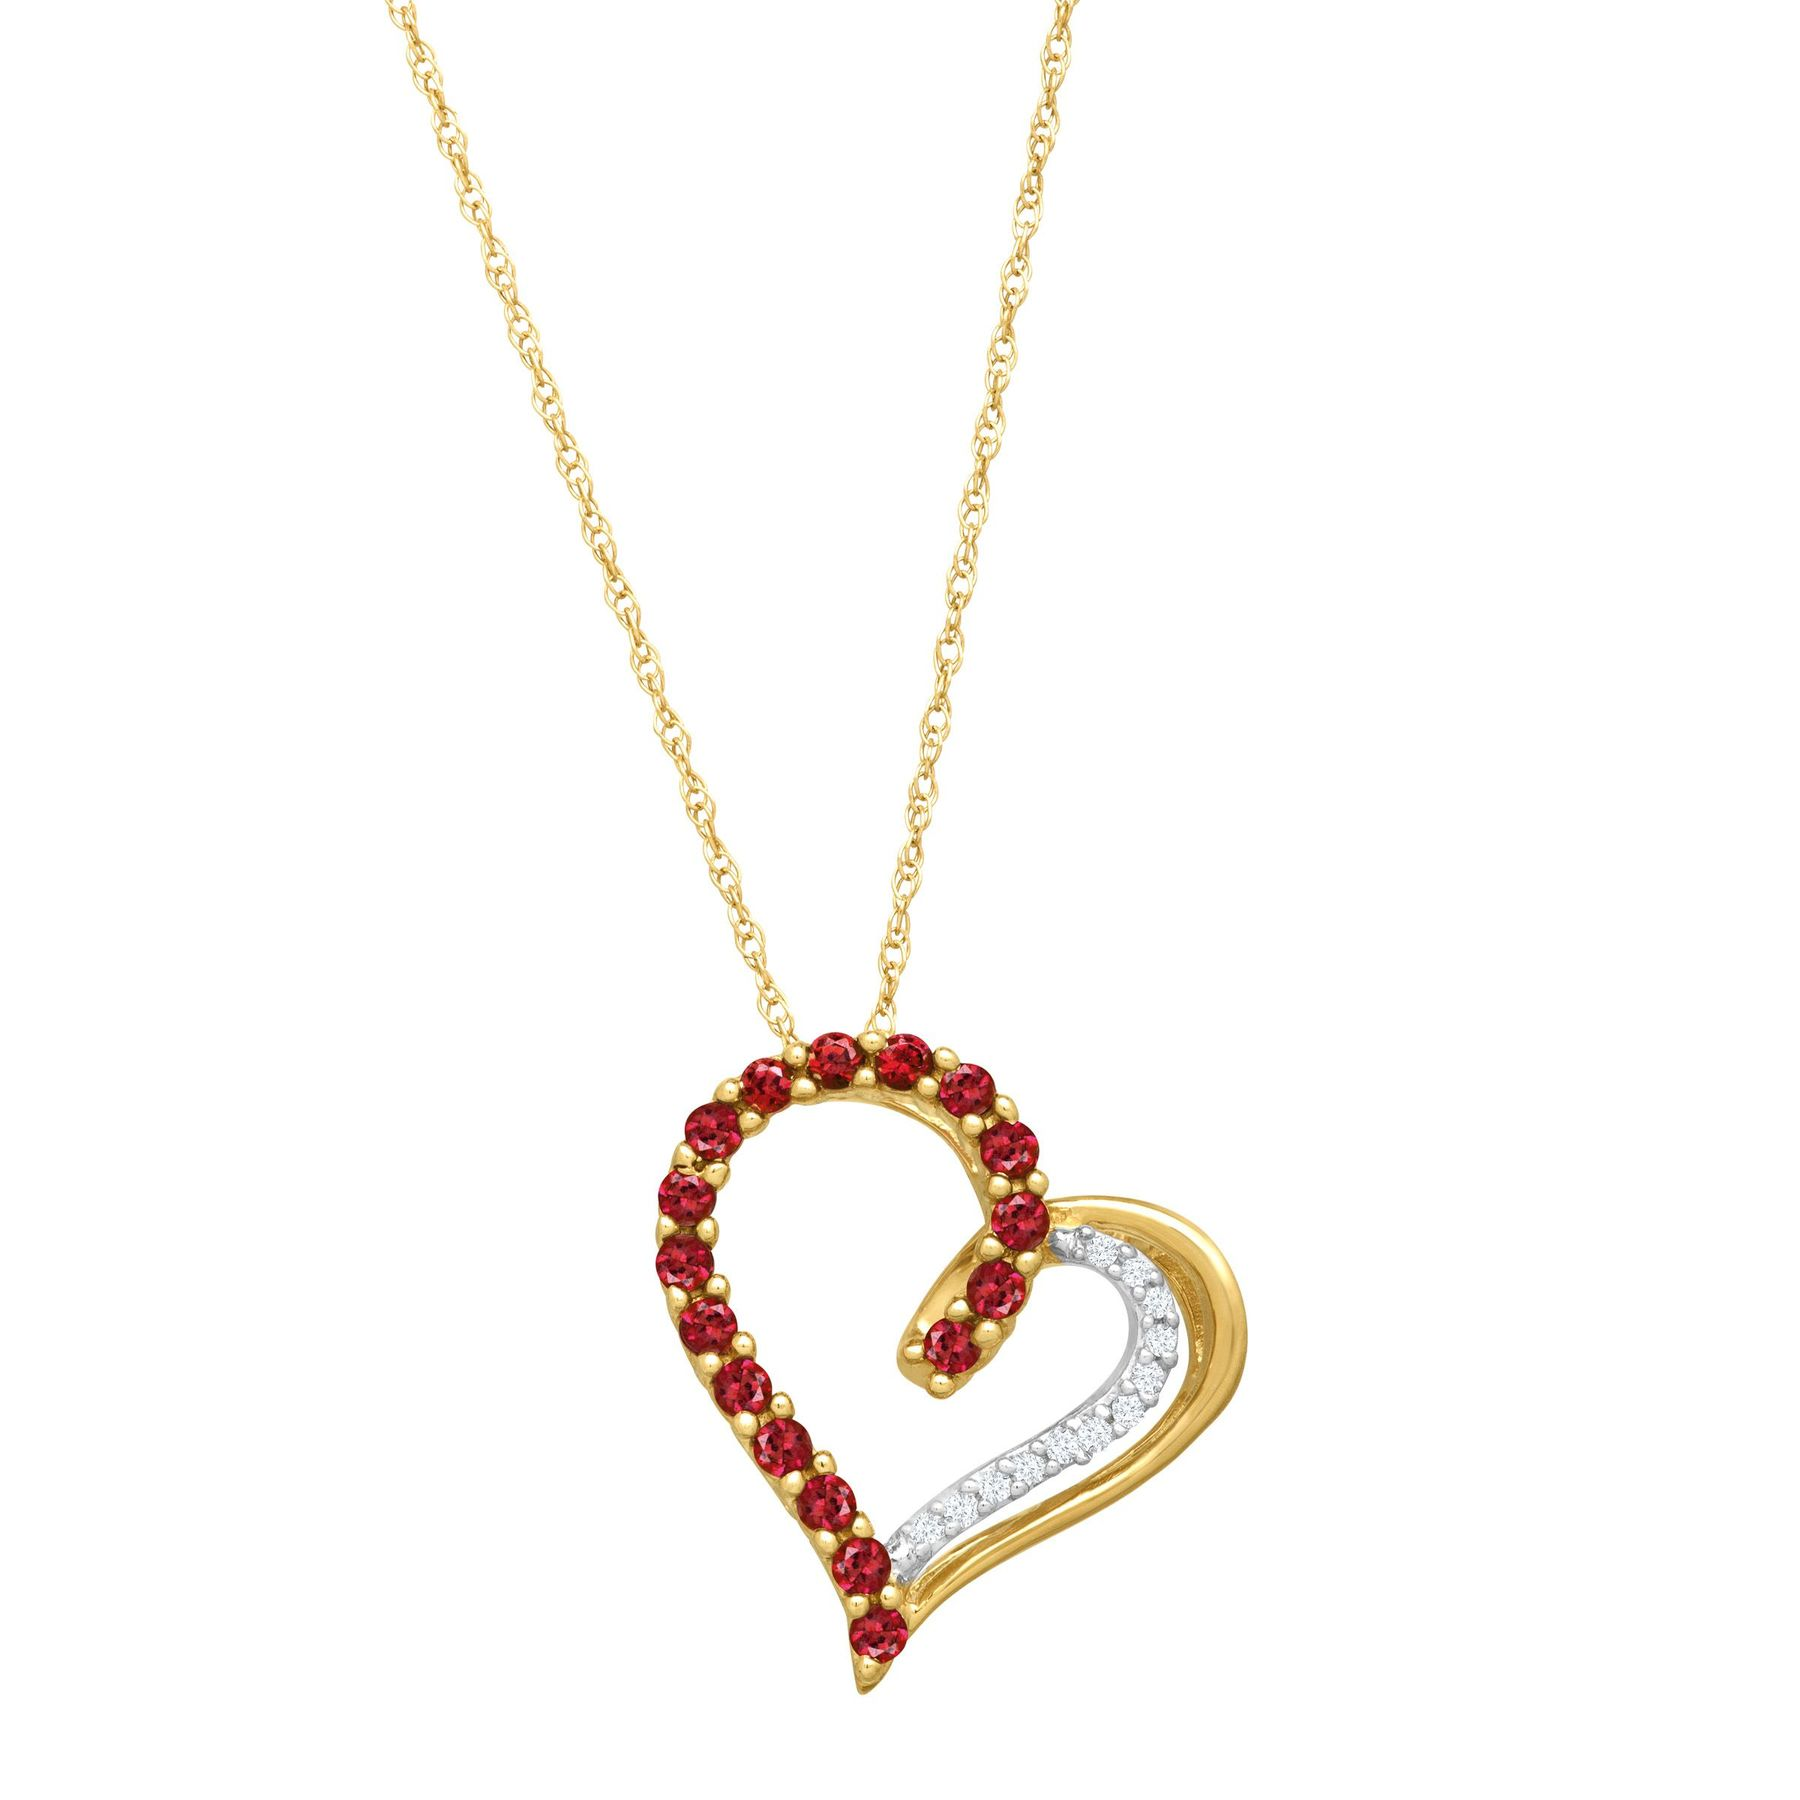 13 ct created ruby heart pendant necklace with diamonds in 14k gold 13 ct ruby heart pendant necklace with diamonds aloadofball Image collections